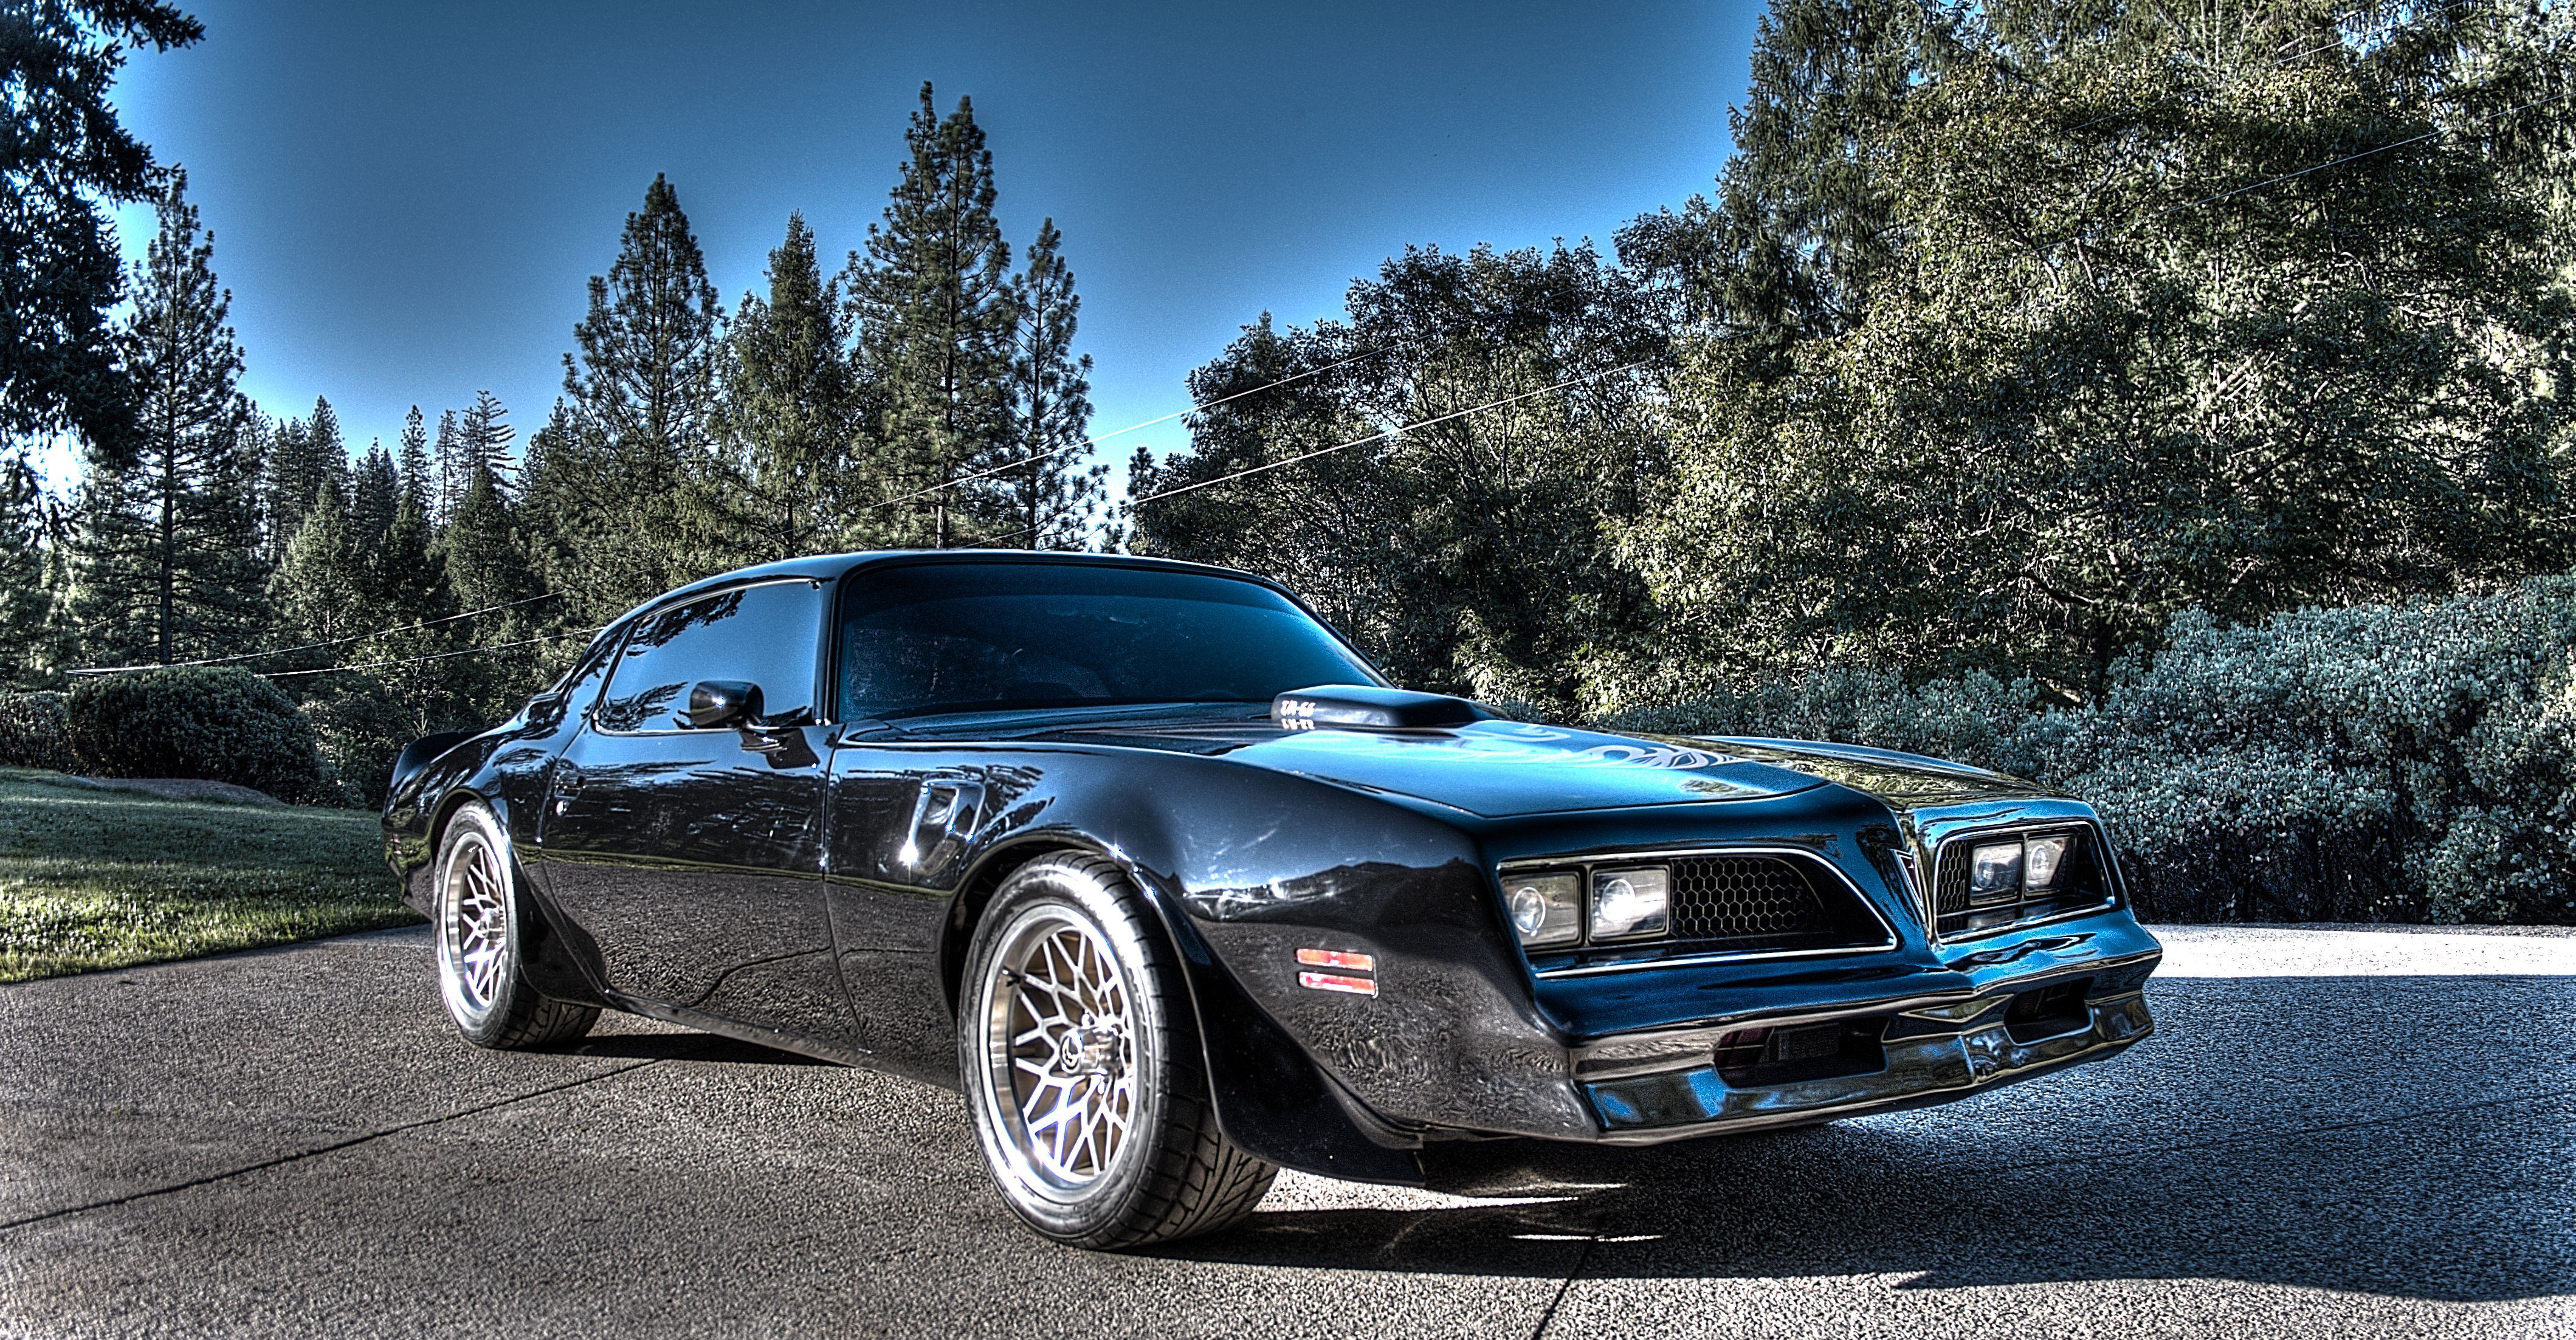 1977 Trans Am Dhc Black Out Edition Darth Vader Mirror Black More Pics Cool Car Pictures Pontiac Firebird Trans Am Amazing Cars